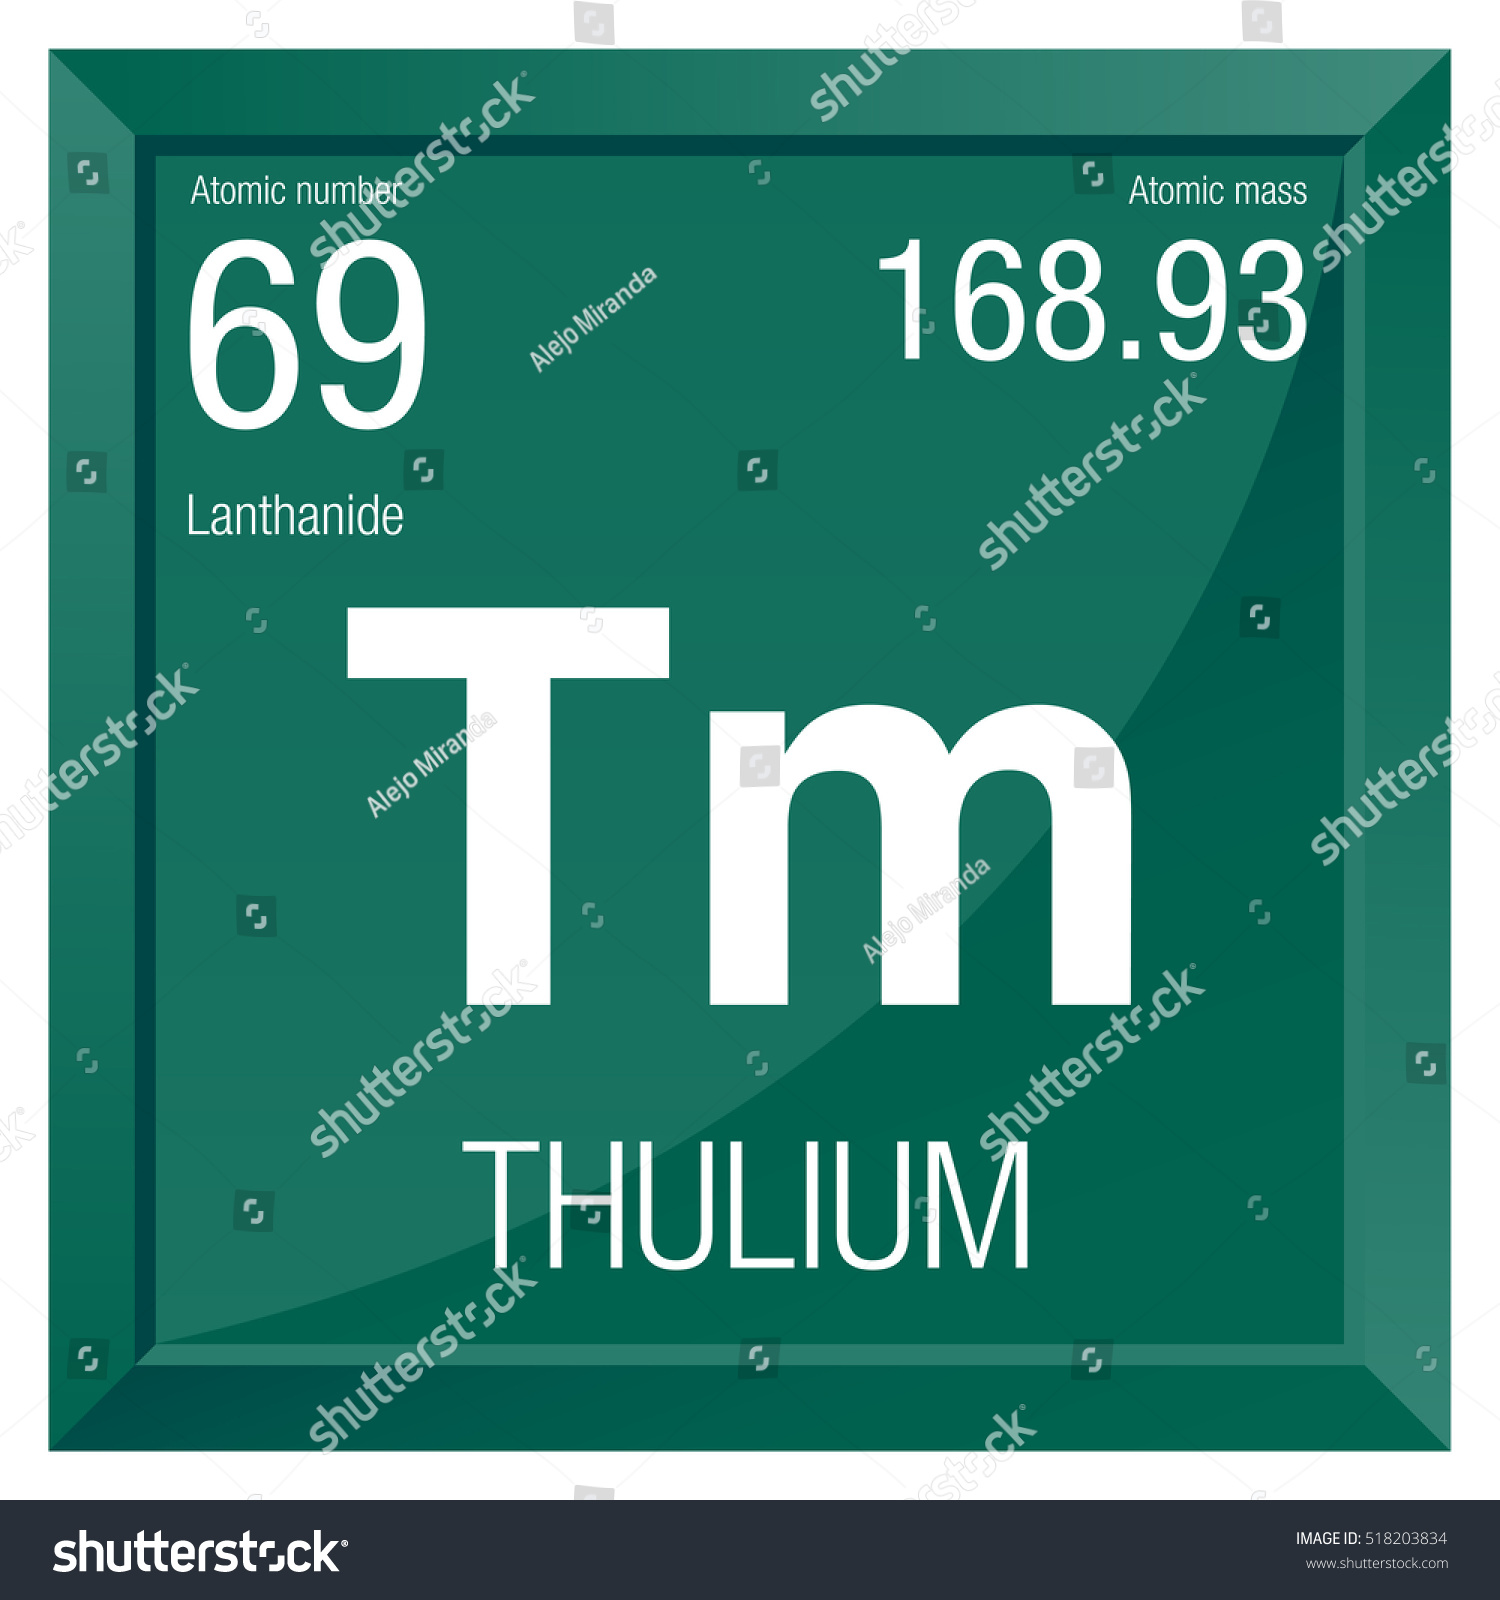 Thulium symbol element number 69 periodic stock vector 518203834 thulium symbol element number 69 of the periodic table of the elements chemistry gamestrikefo Gallery